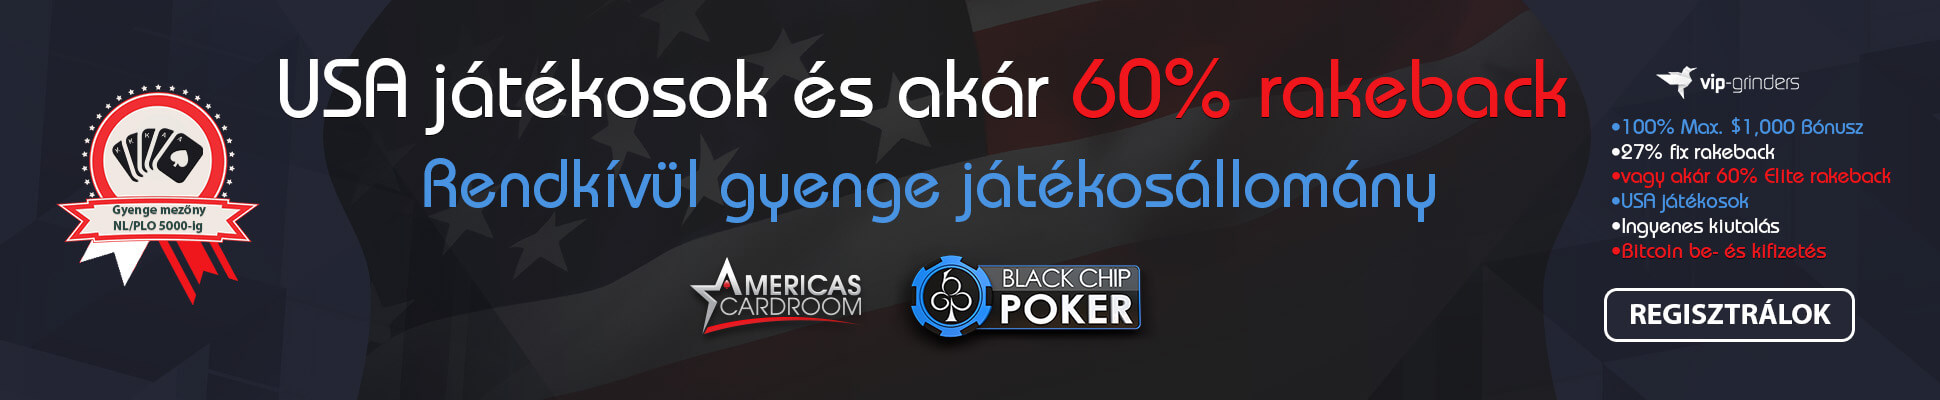 Americas Cardroom Black Chip Poker slider